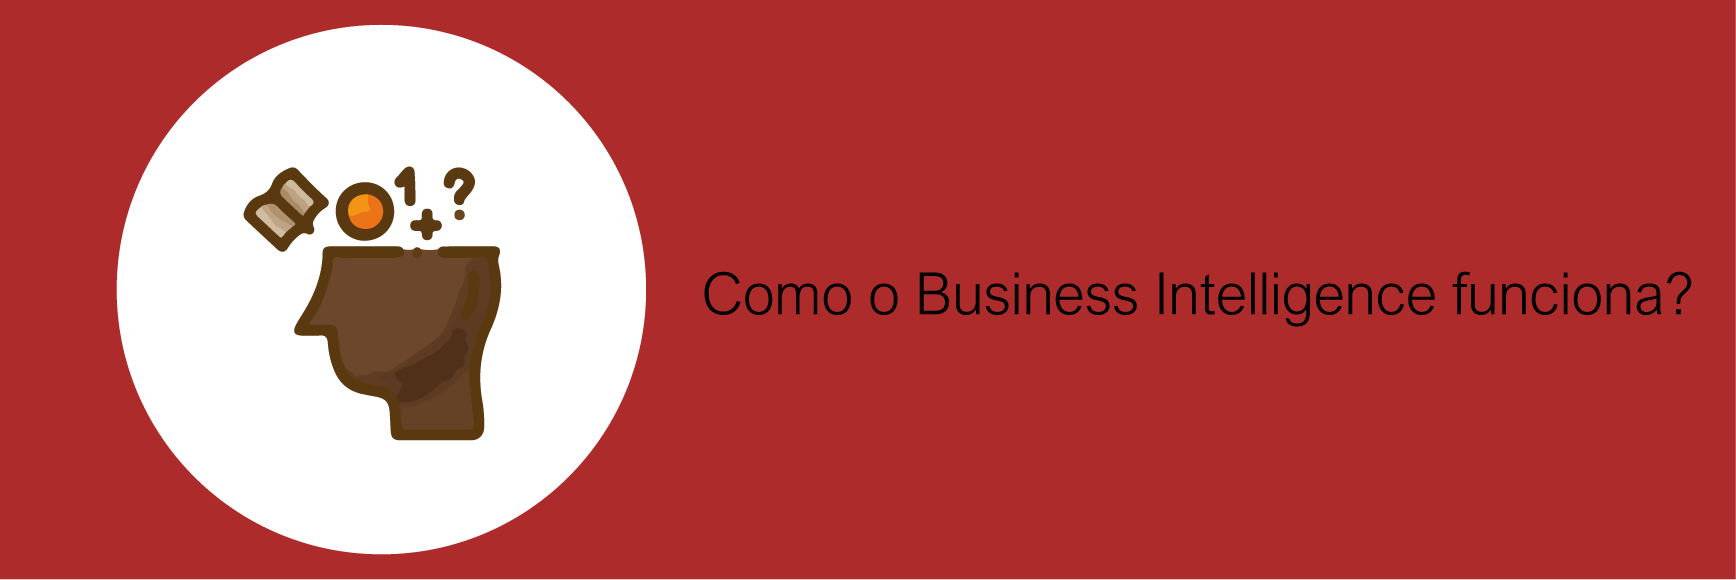 Como o Business Intelligence funciona?